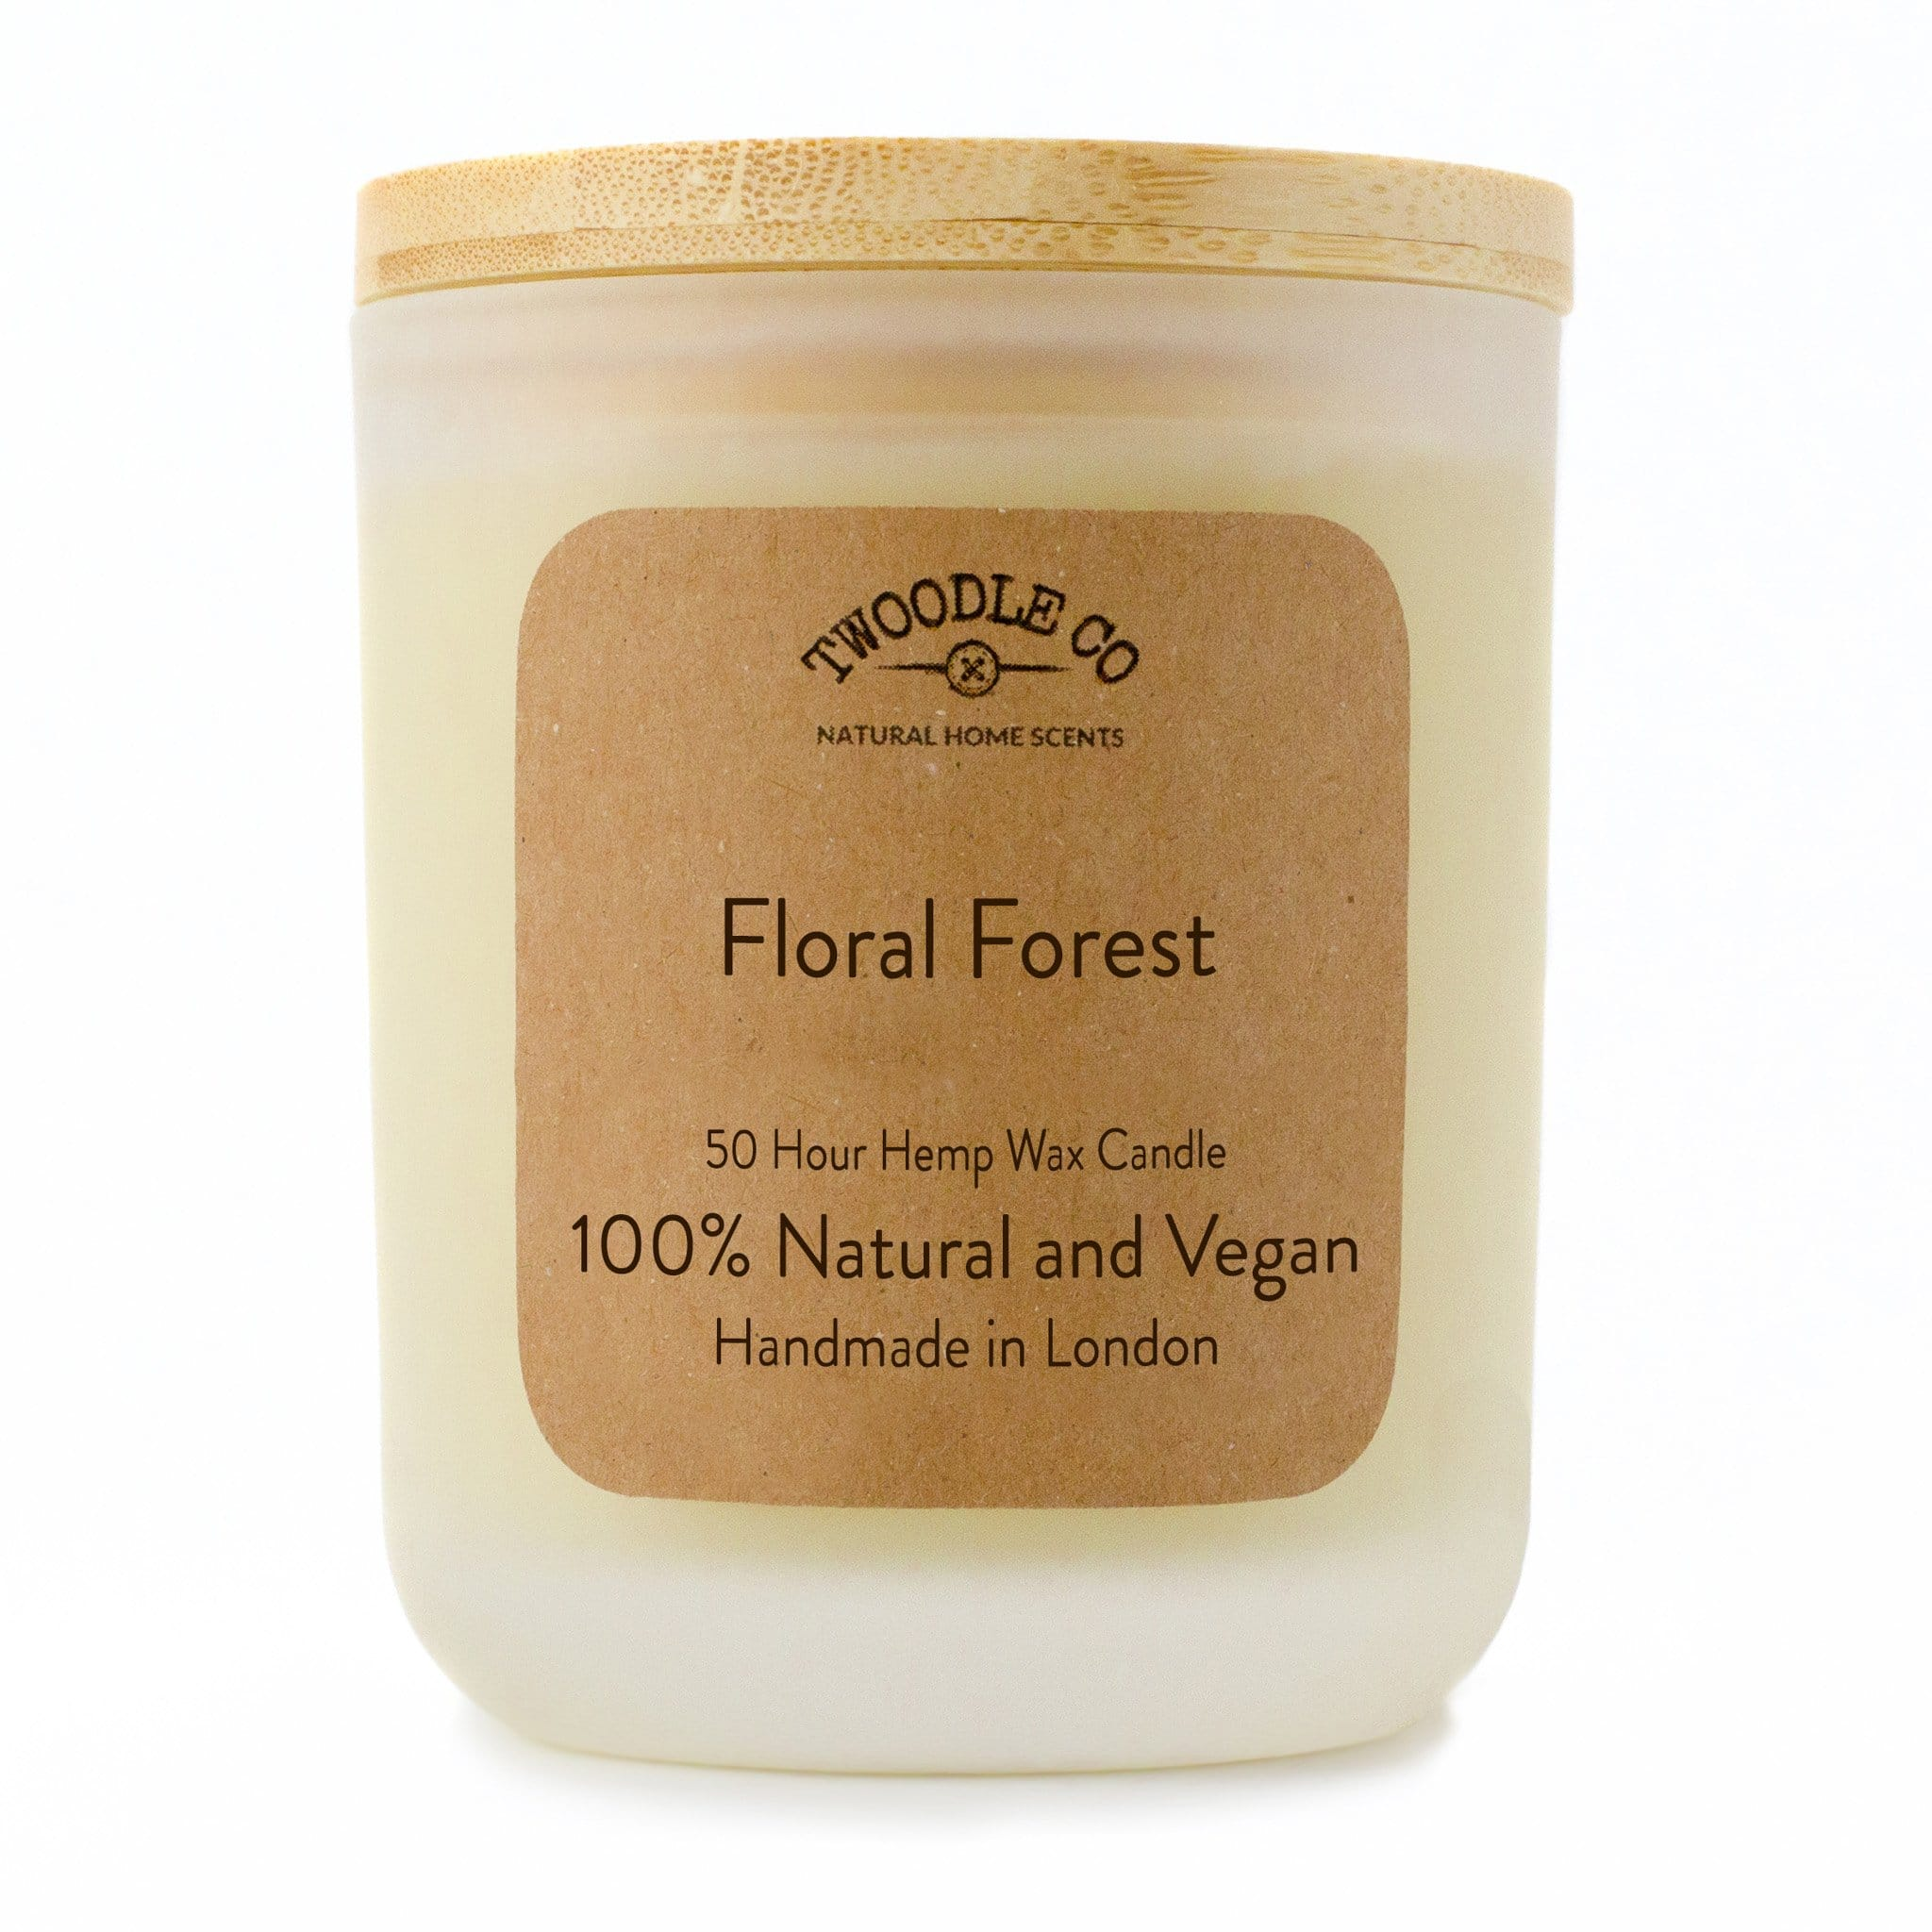 Twoodle Co Medium Scented Candle Floral Forest